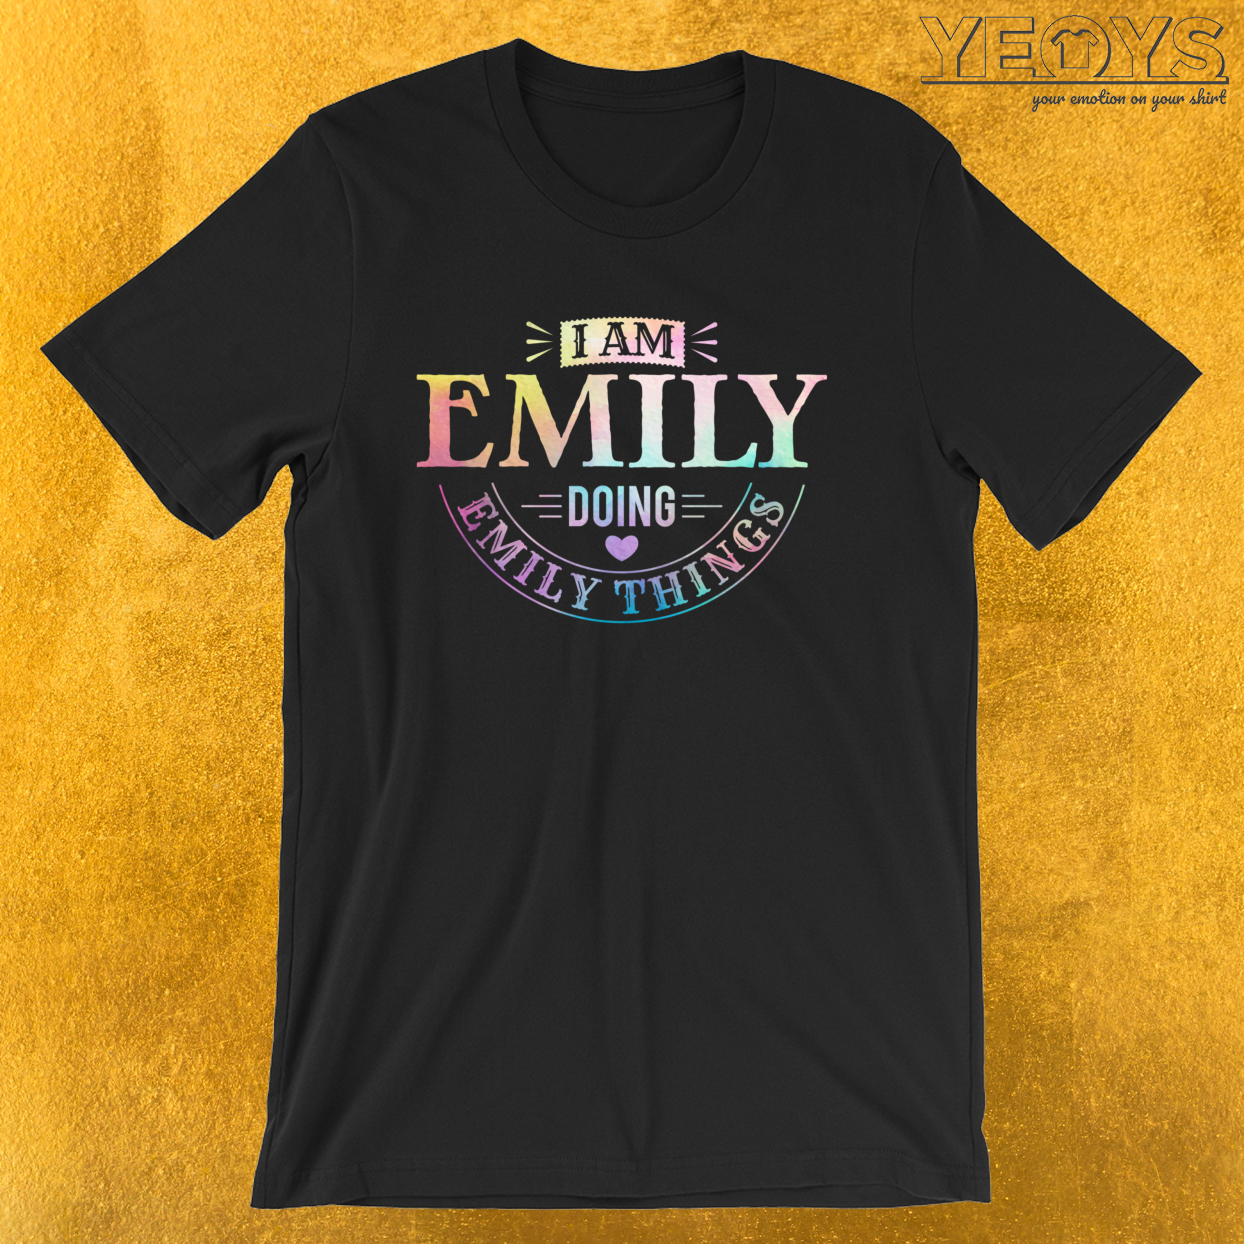 I Am Emily Doing Emily Things – Humorous Quotes Tee